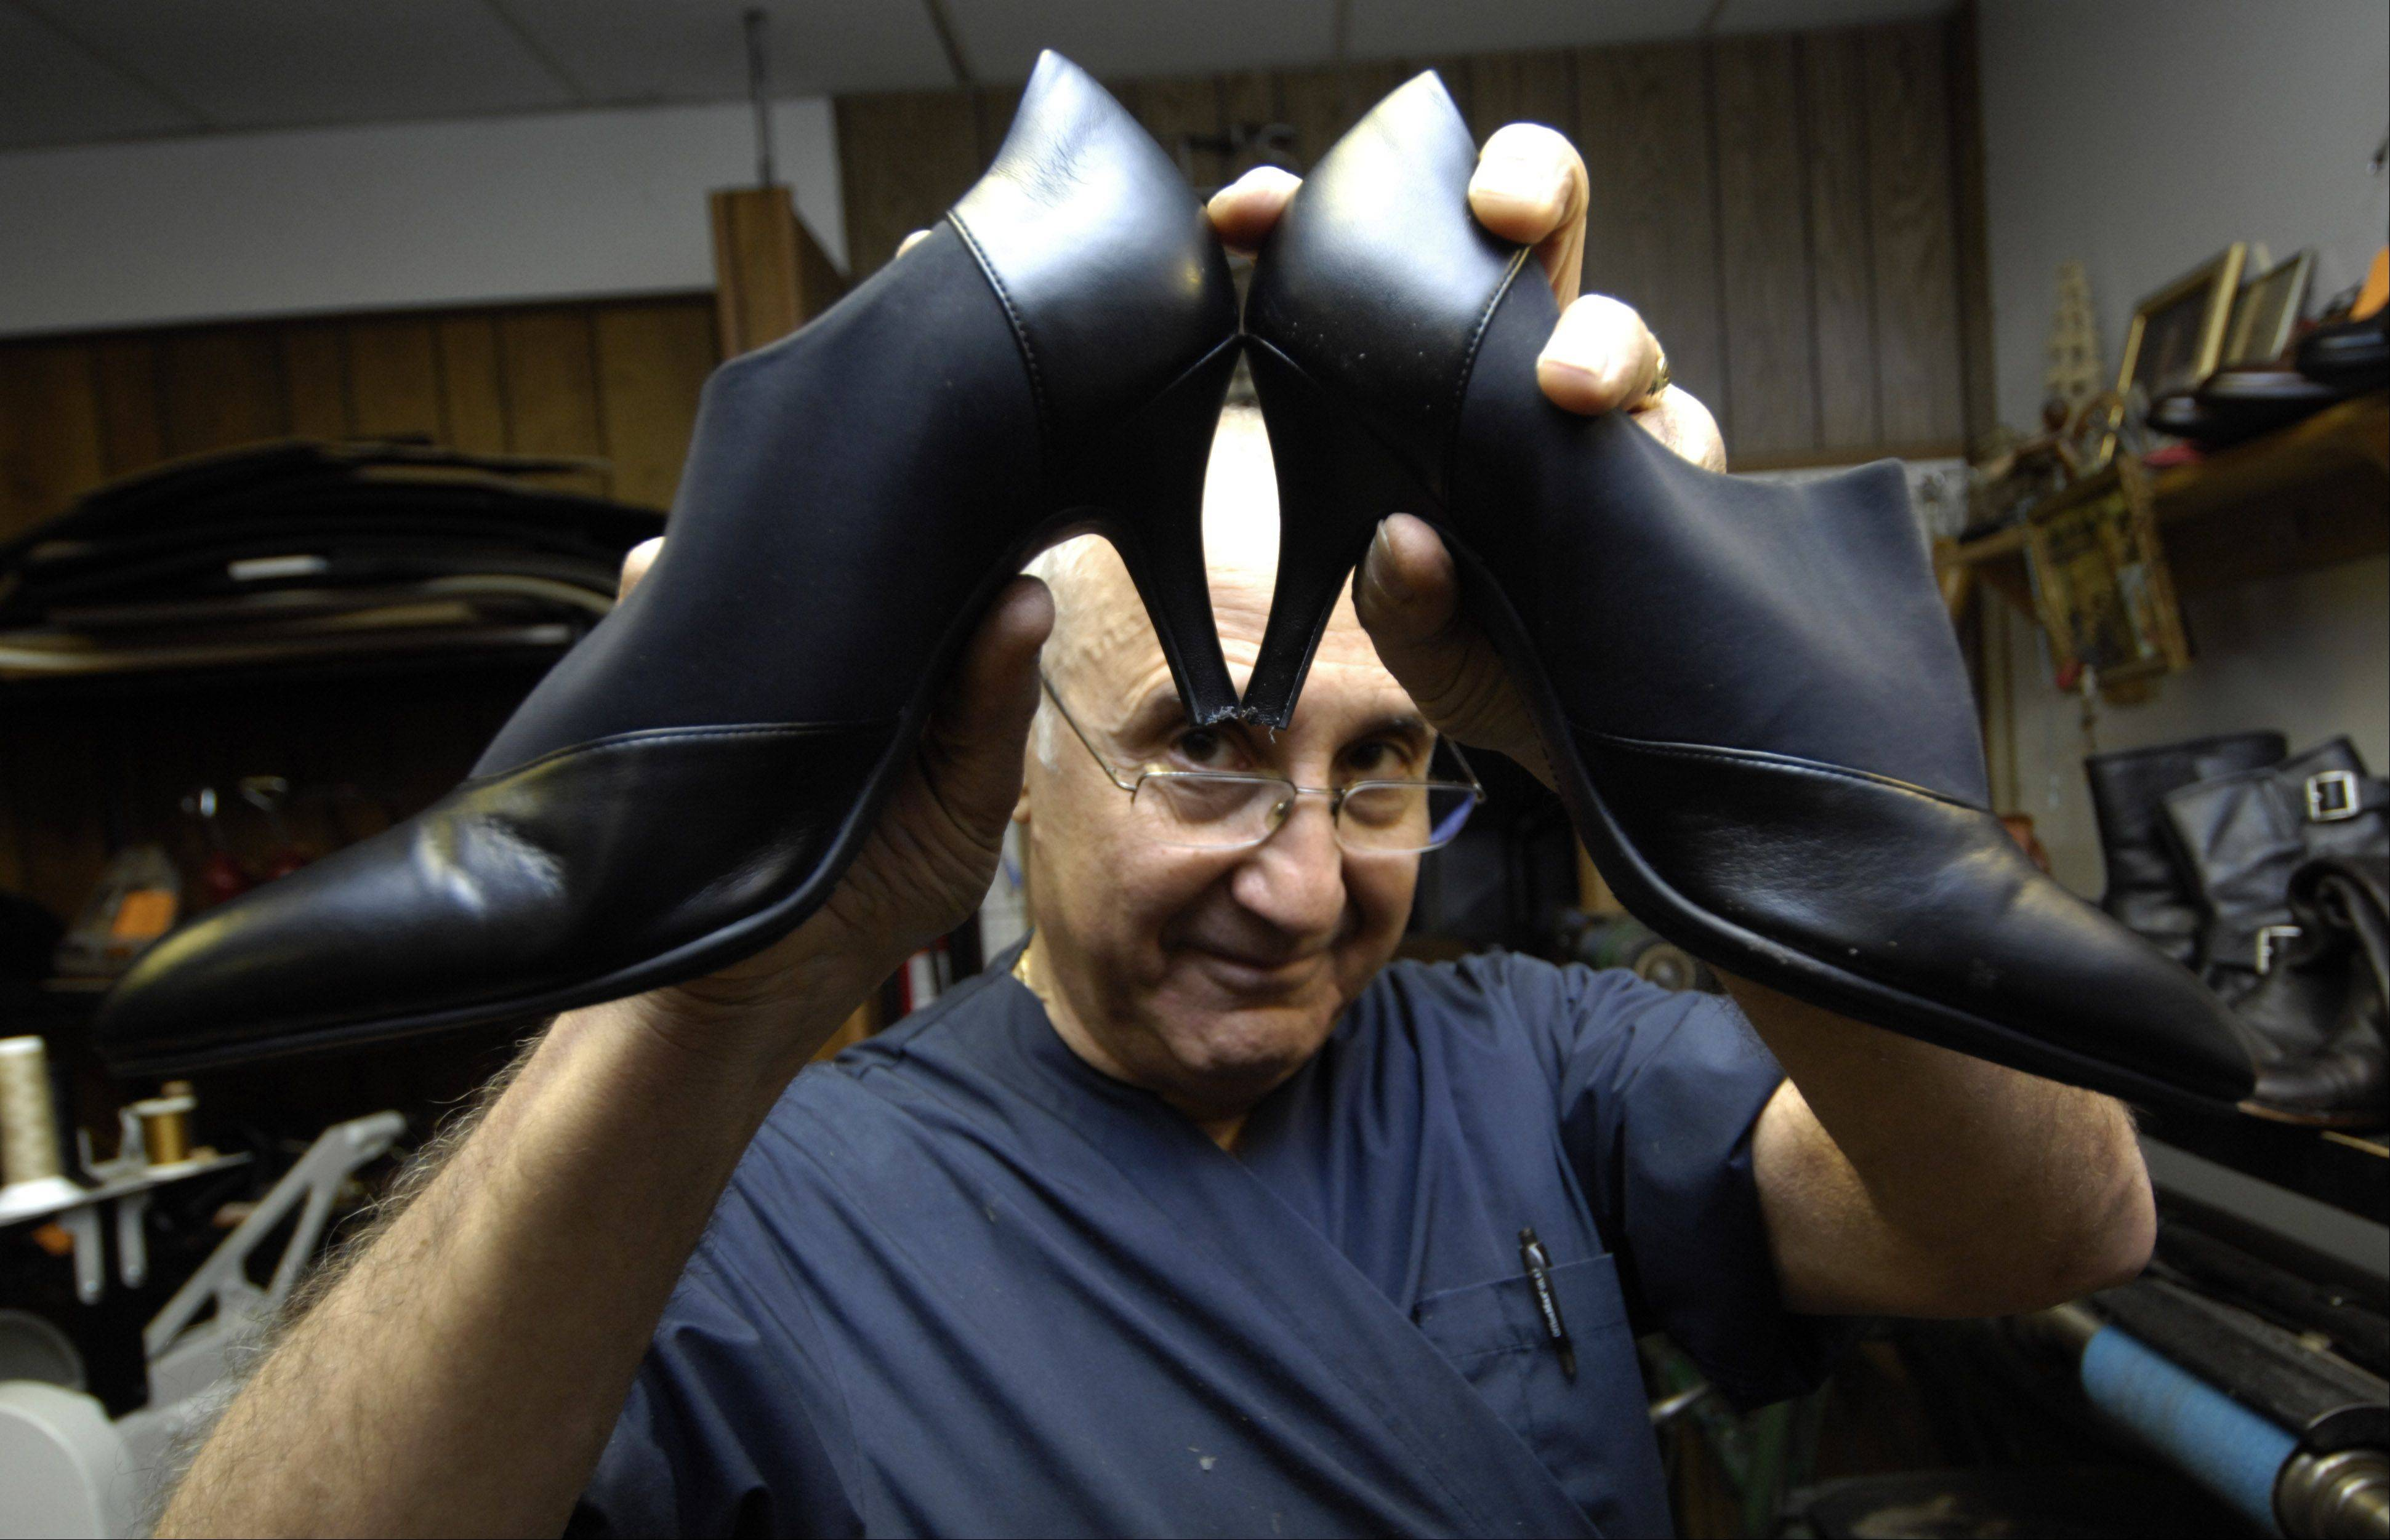 Larry DeAngelo makes sure the heals on a pair of shoes are even during a repair at Al's Shoe Service in Mount Prospect.